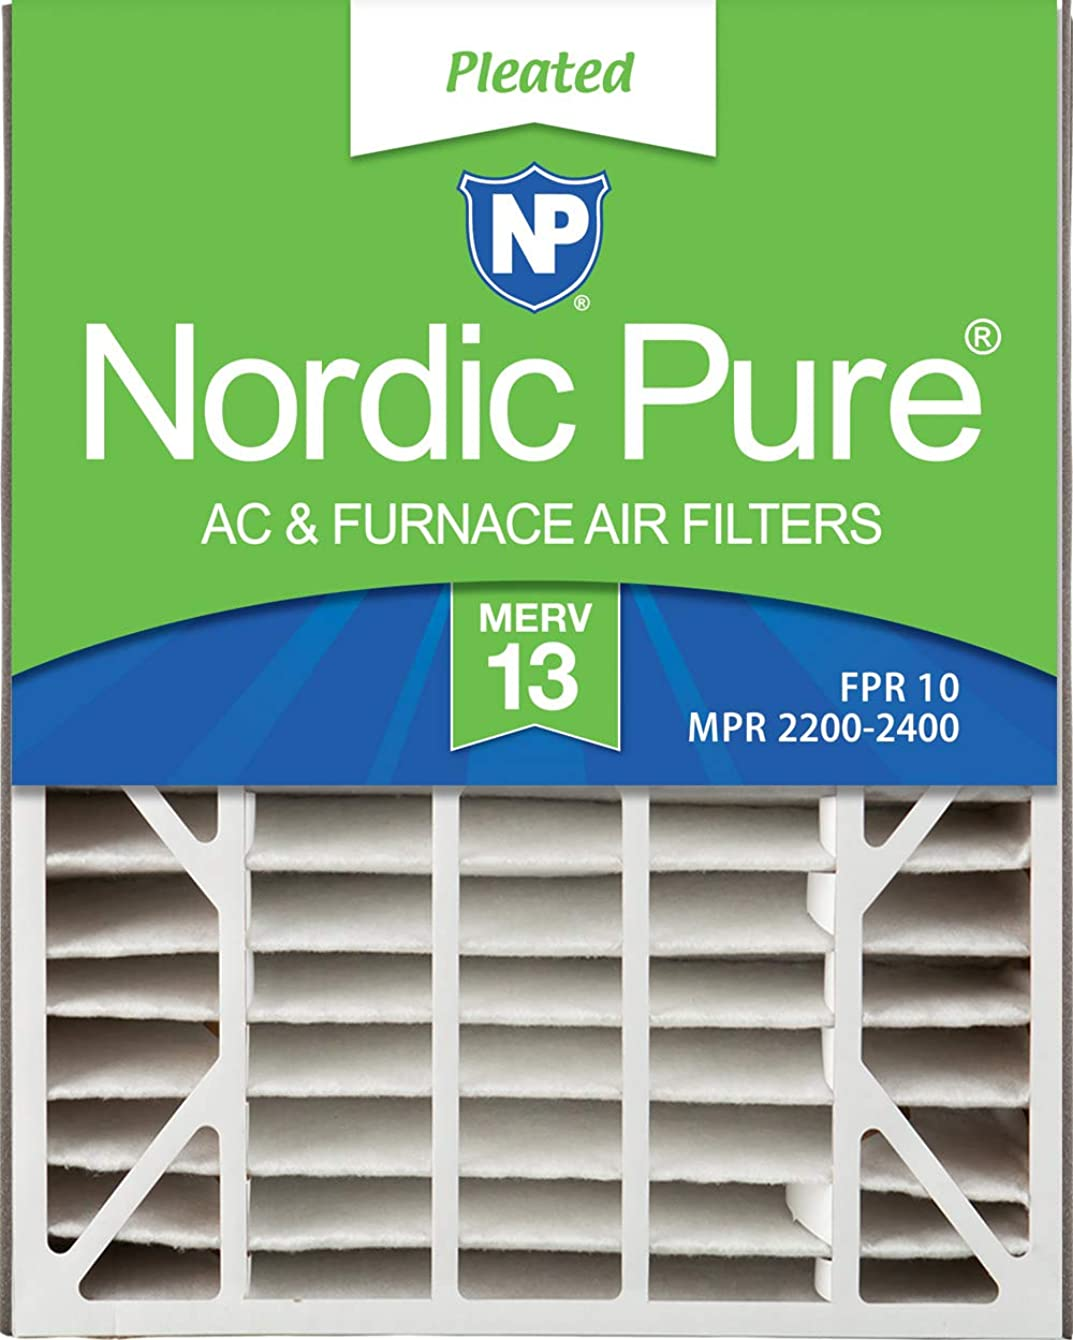 Nordic Pure 20x25x5 (4-7/8 Actual Depth) MERV 13 Trion Air Bear Replacement Pleated AC Furnace Air Filter, Box of 2